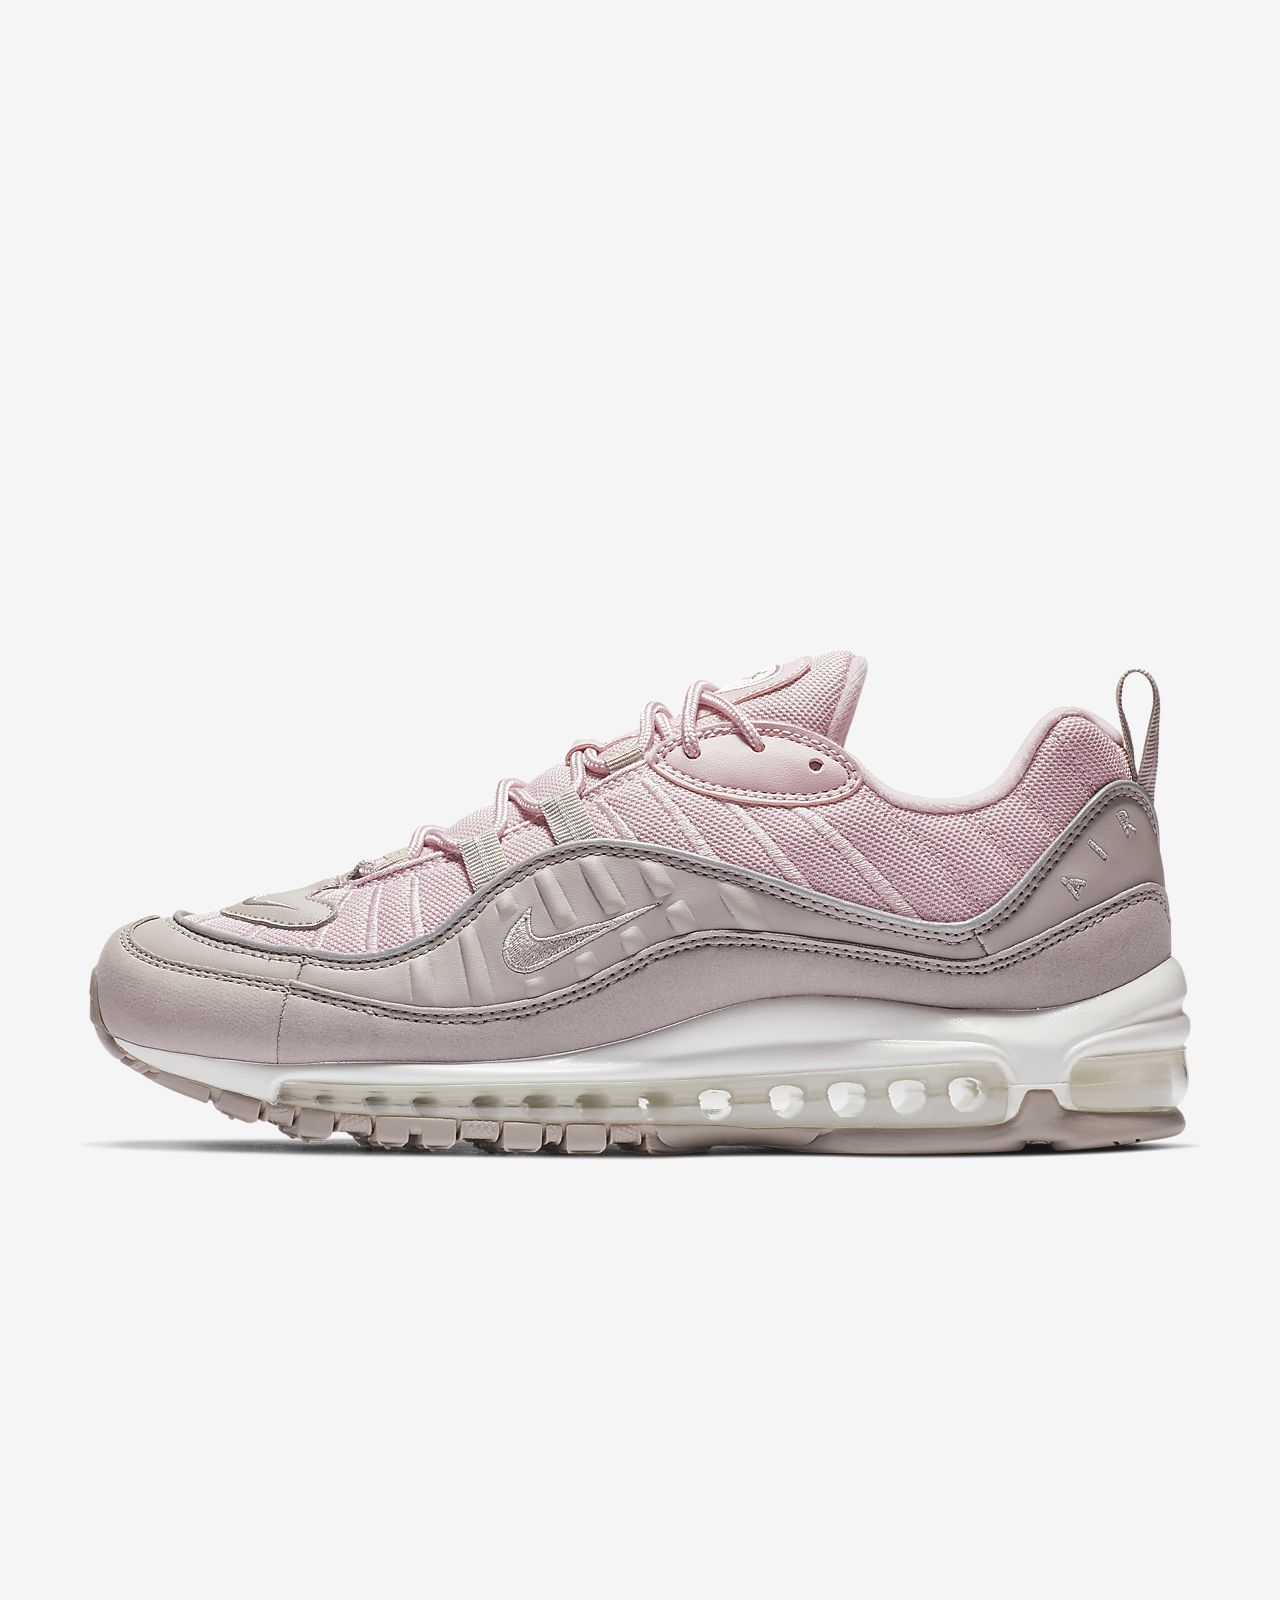 Nike Air Max 98 Herrenschuh